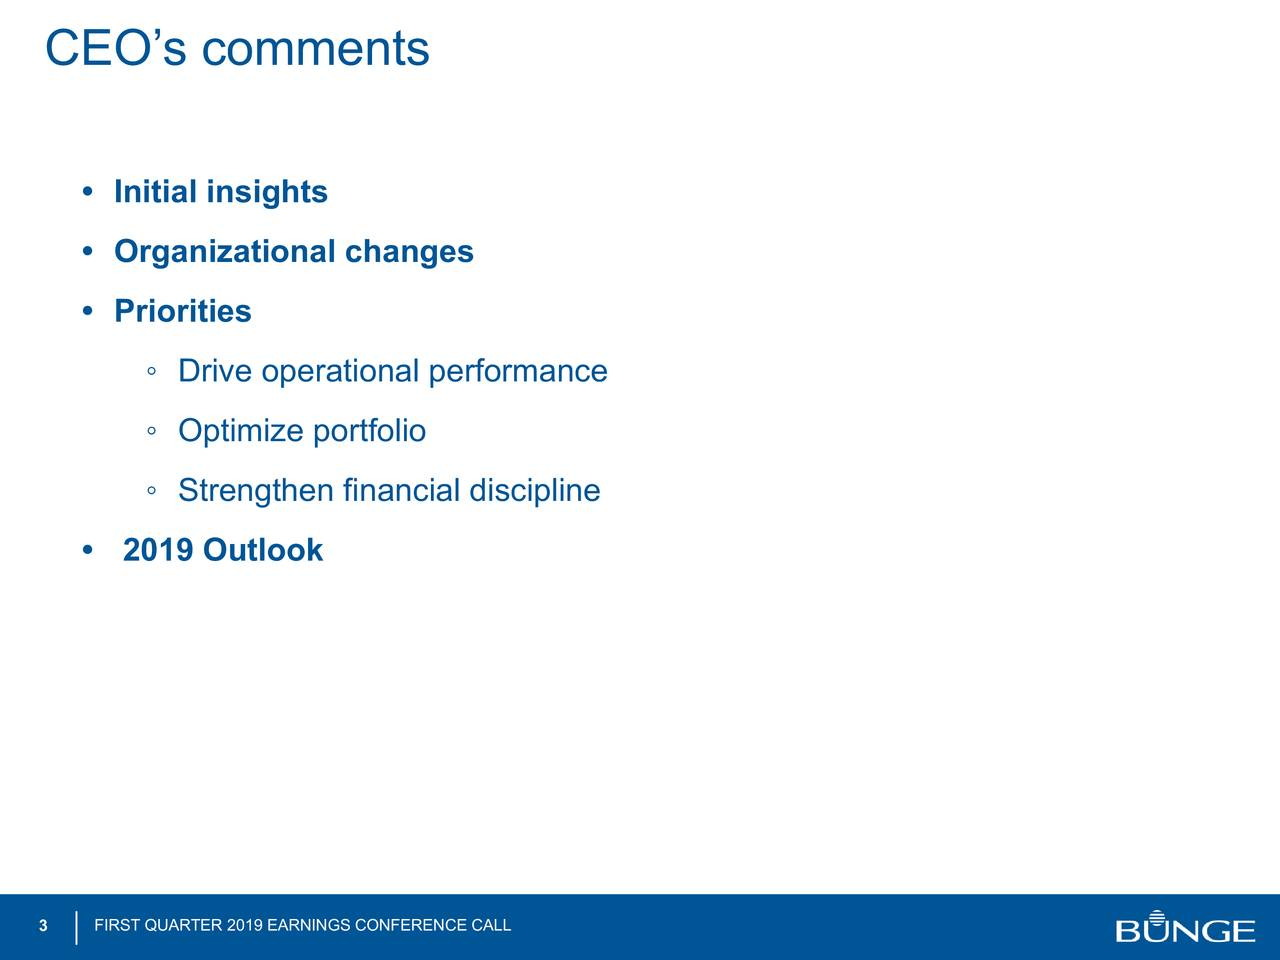 • Initial insights • Organizational changes • Priorities ◦ Drive operational performance #2 ◦ Optimize portfolio ◦ Strengthen financial discipline • 2019 Outlook 3 FIRST QUARTER 2019 EARNINGS CONFERENCE CALL